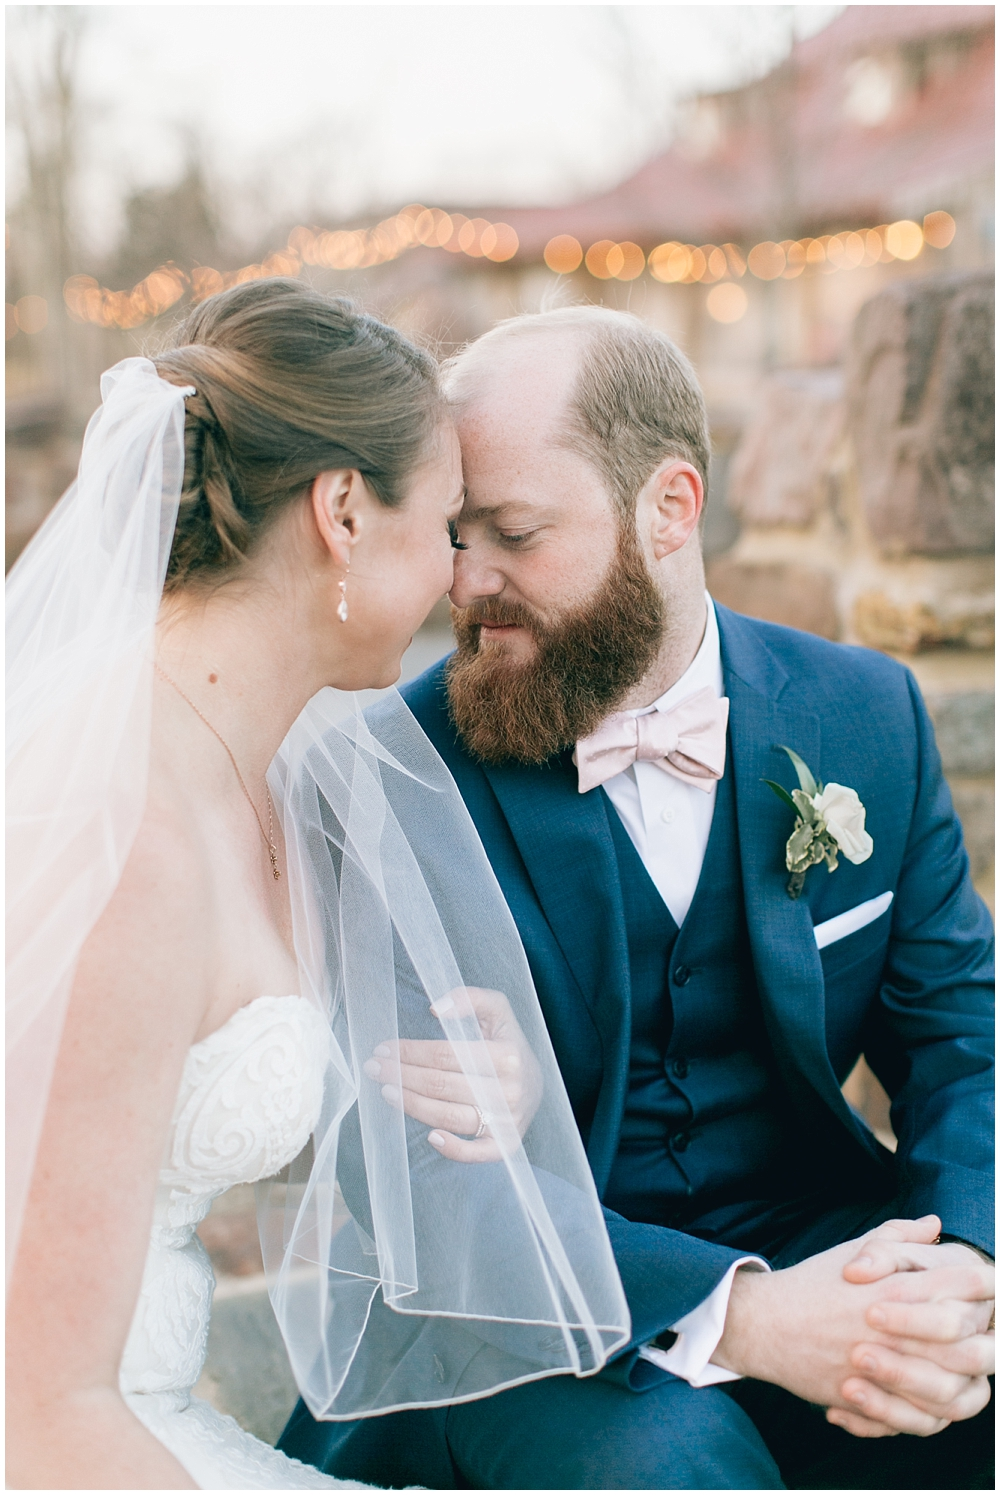 PattengalePhotography_StLouis_Wedding_Photographer_Boho_Hipster_Urban_Style_StCharles_Missouri_BullRunWinery_Charlottesville_Ashley&Sawyer_0118.jpg